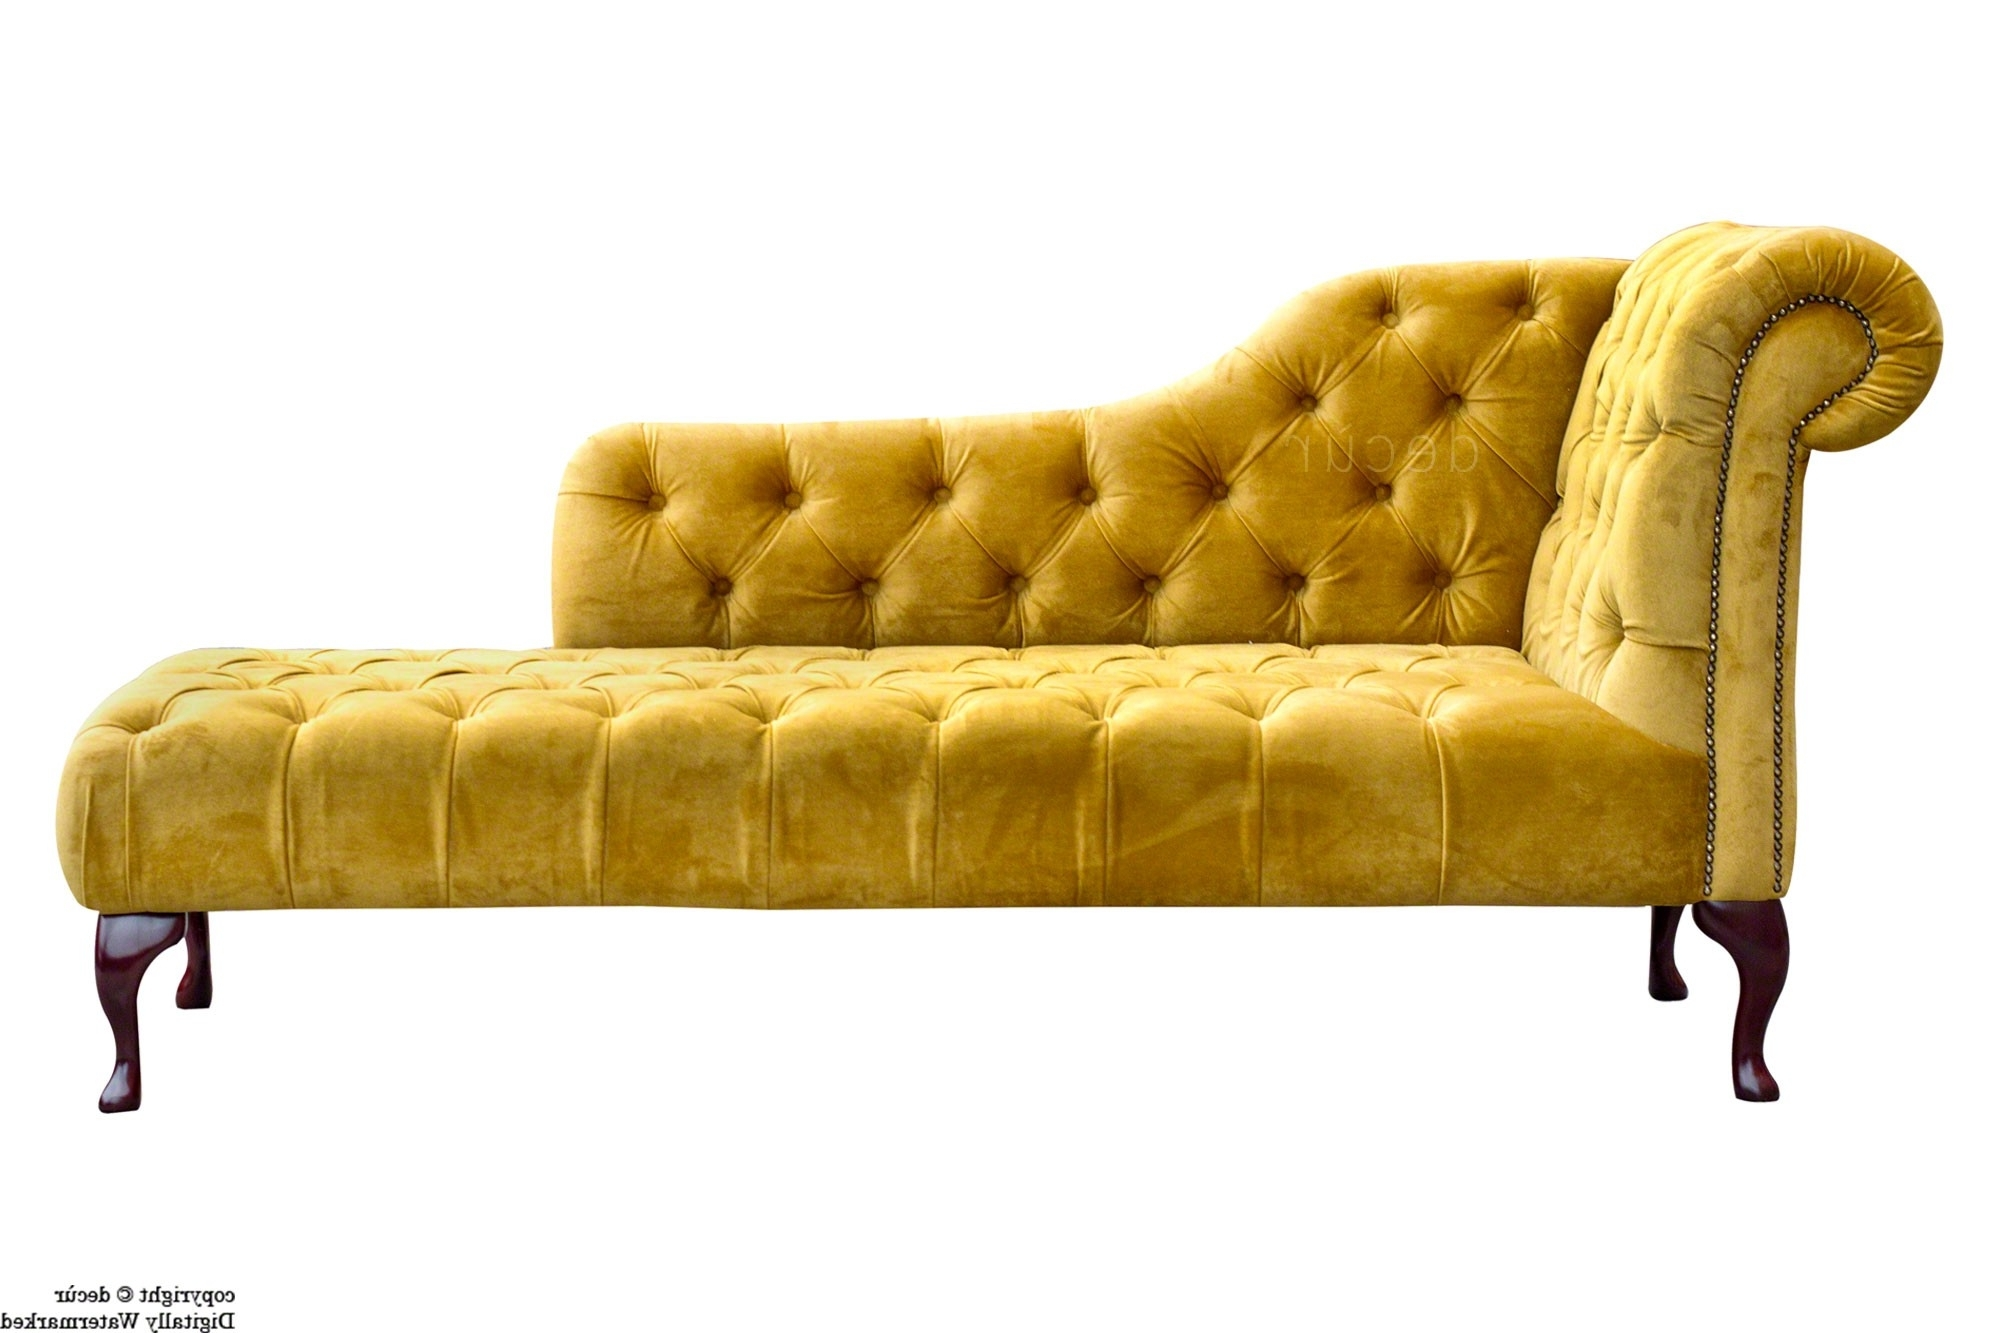 Widely Used Bespoke Designer Sofas, Footstools, Bespoke Footstools, Bespoke With Gold Chaise Lounges (View 4 of 15)